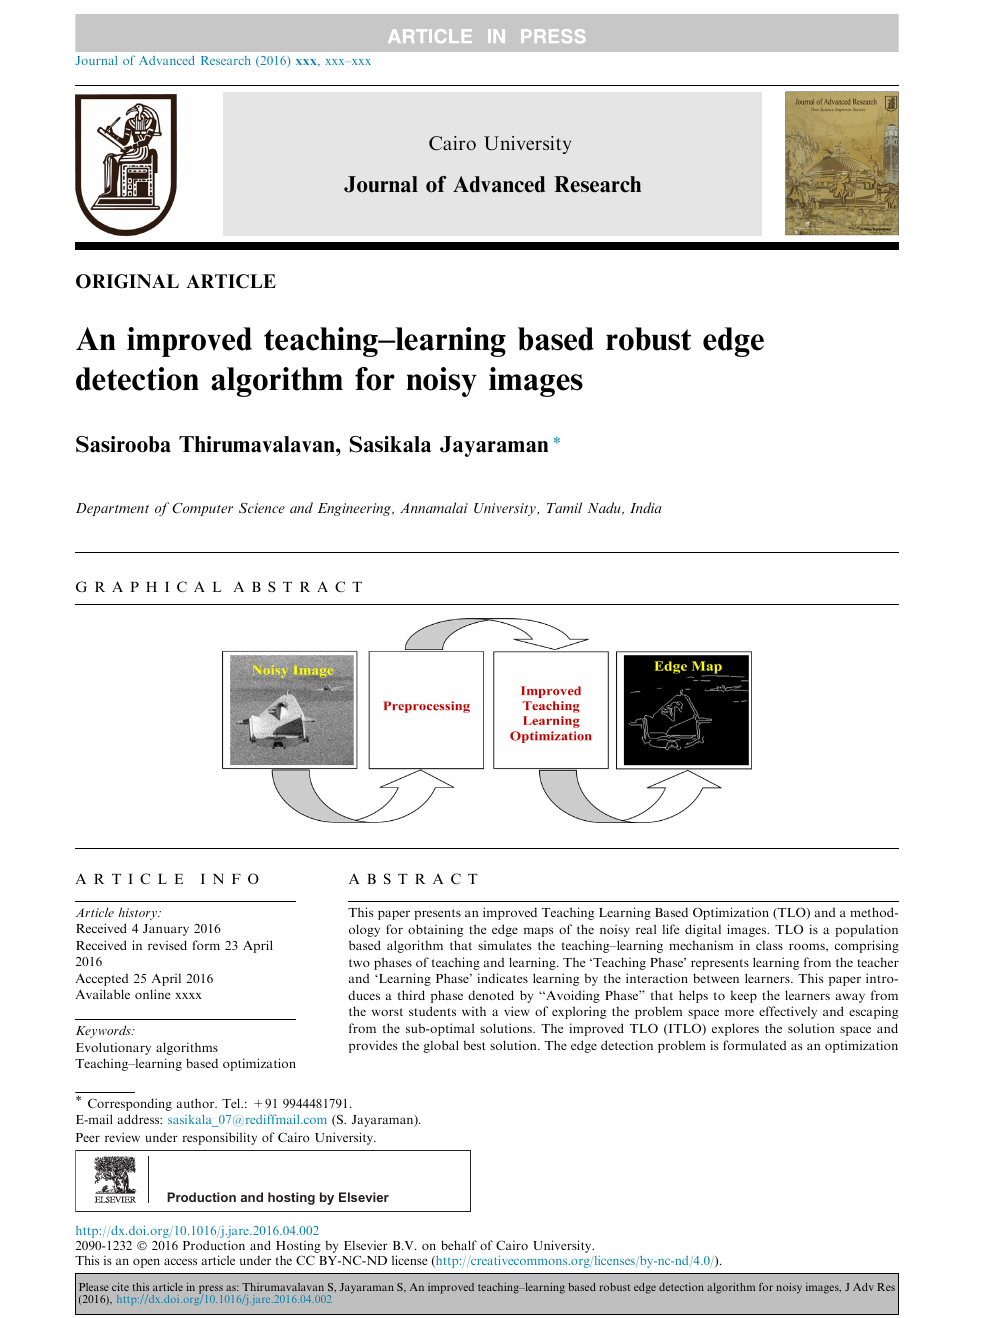 An improved teaching–learning based robust edge detection